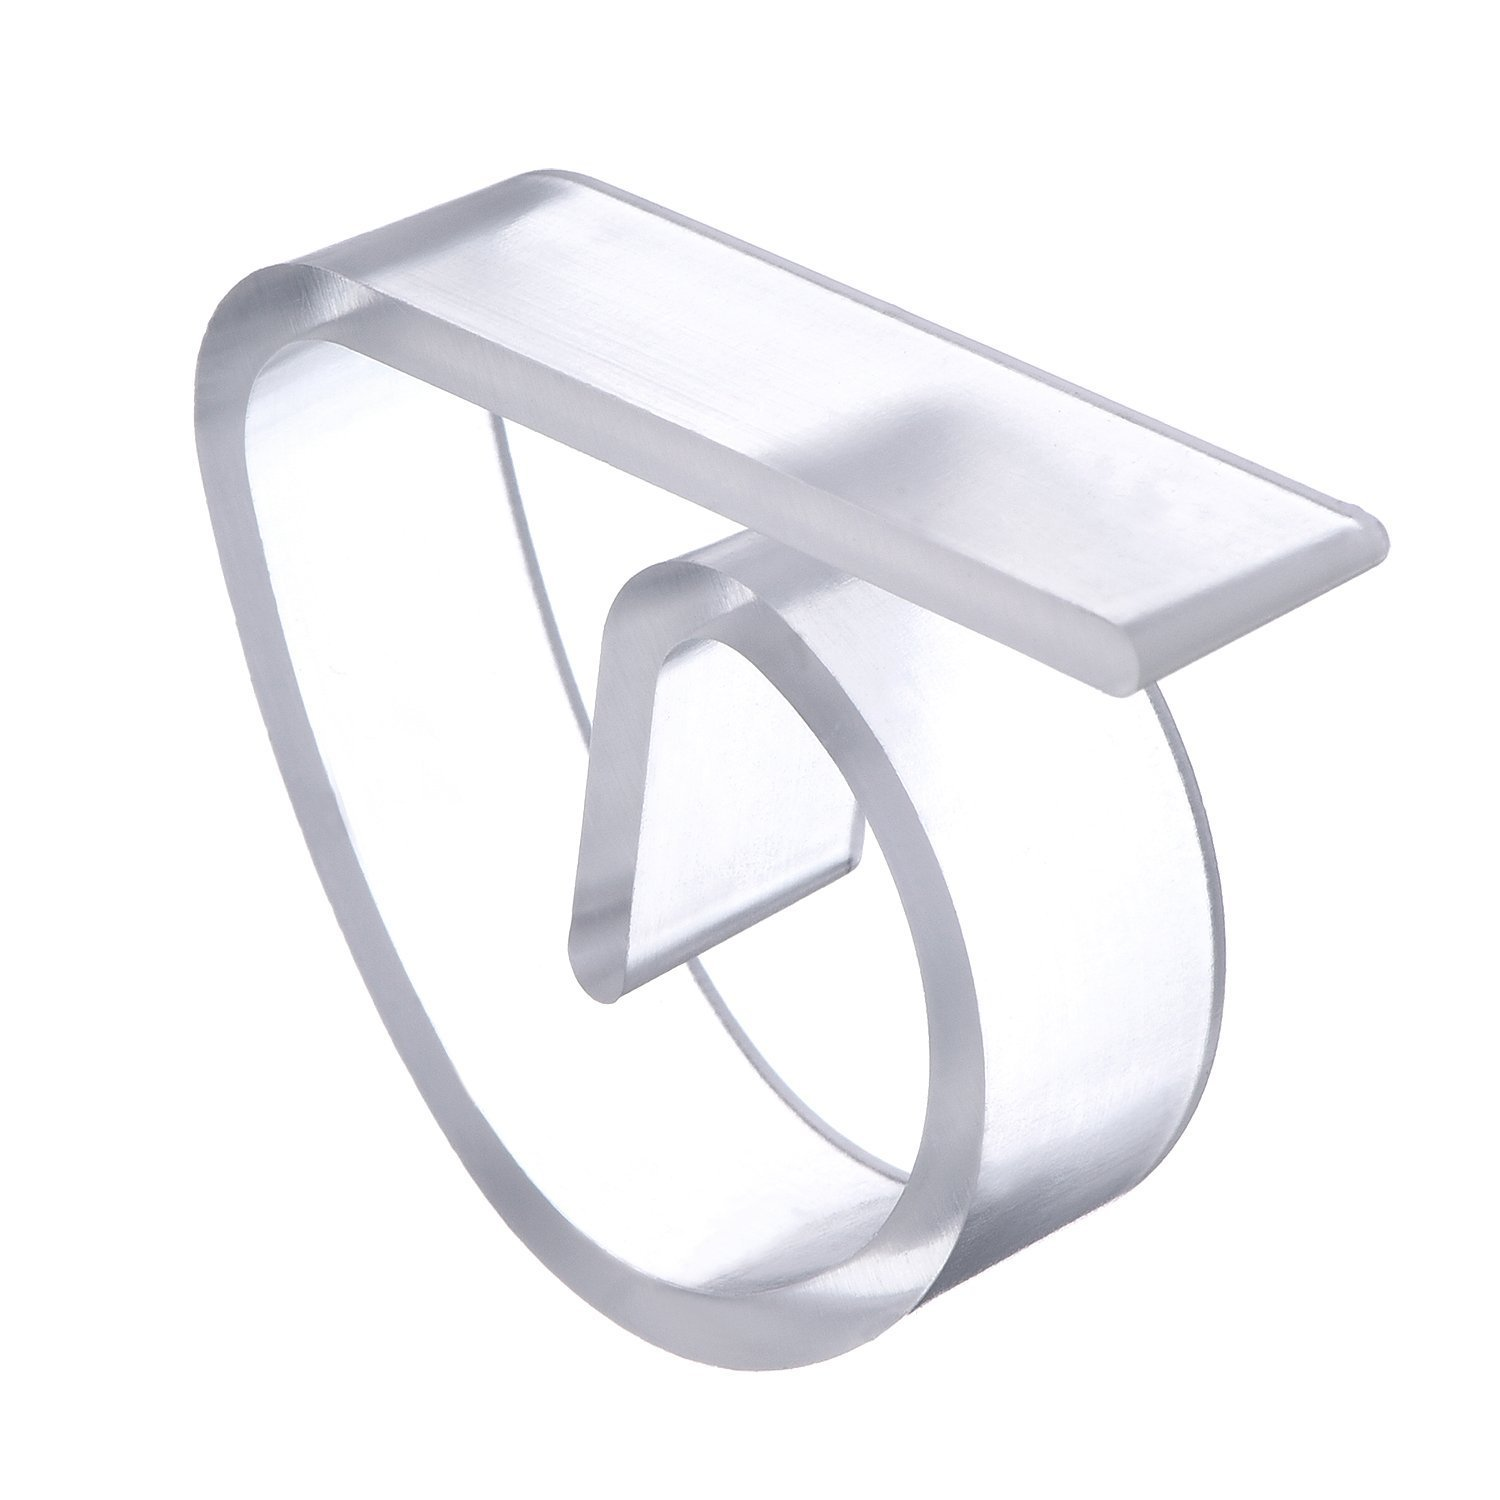 Yansanido 72 Count Hard Plastic Table Cover Clips Clear Plastic Table Cloth Holders Plastic Transparent Tablecover Table Cloth Clip Clamp for Home Party & Picnic (72pcs ,Clear)